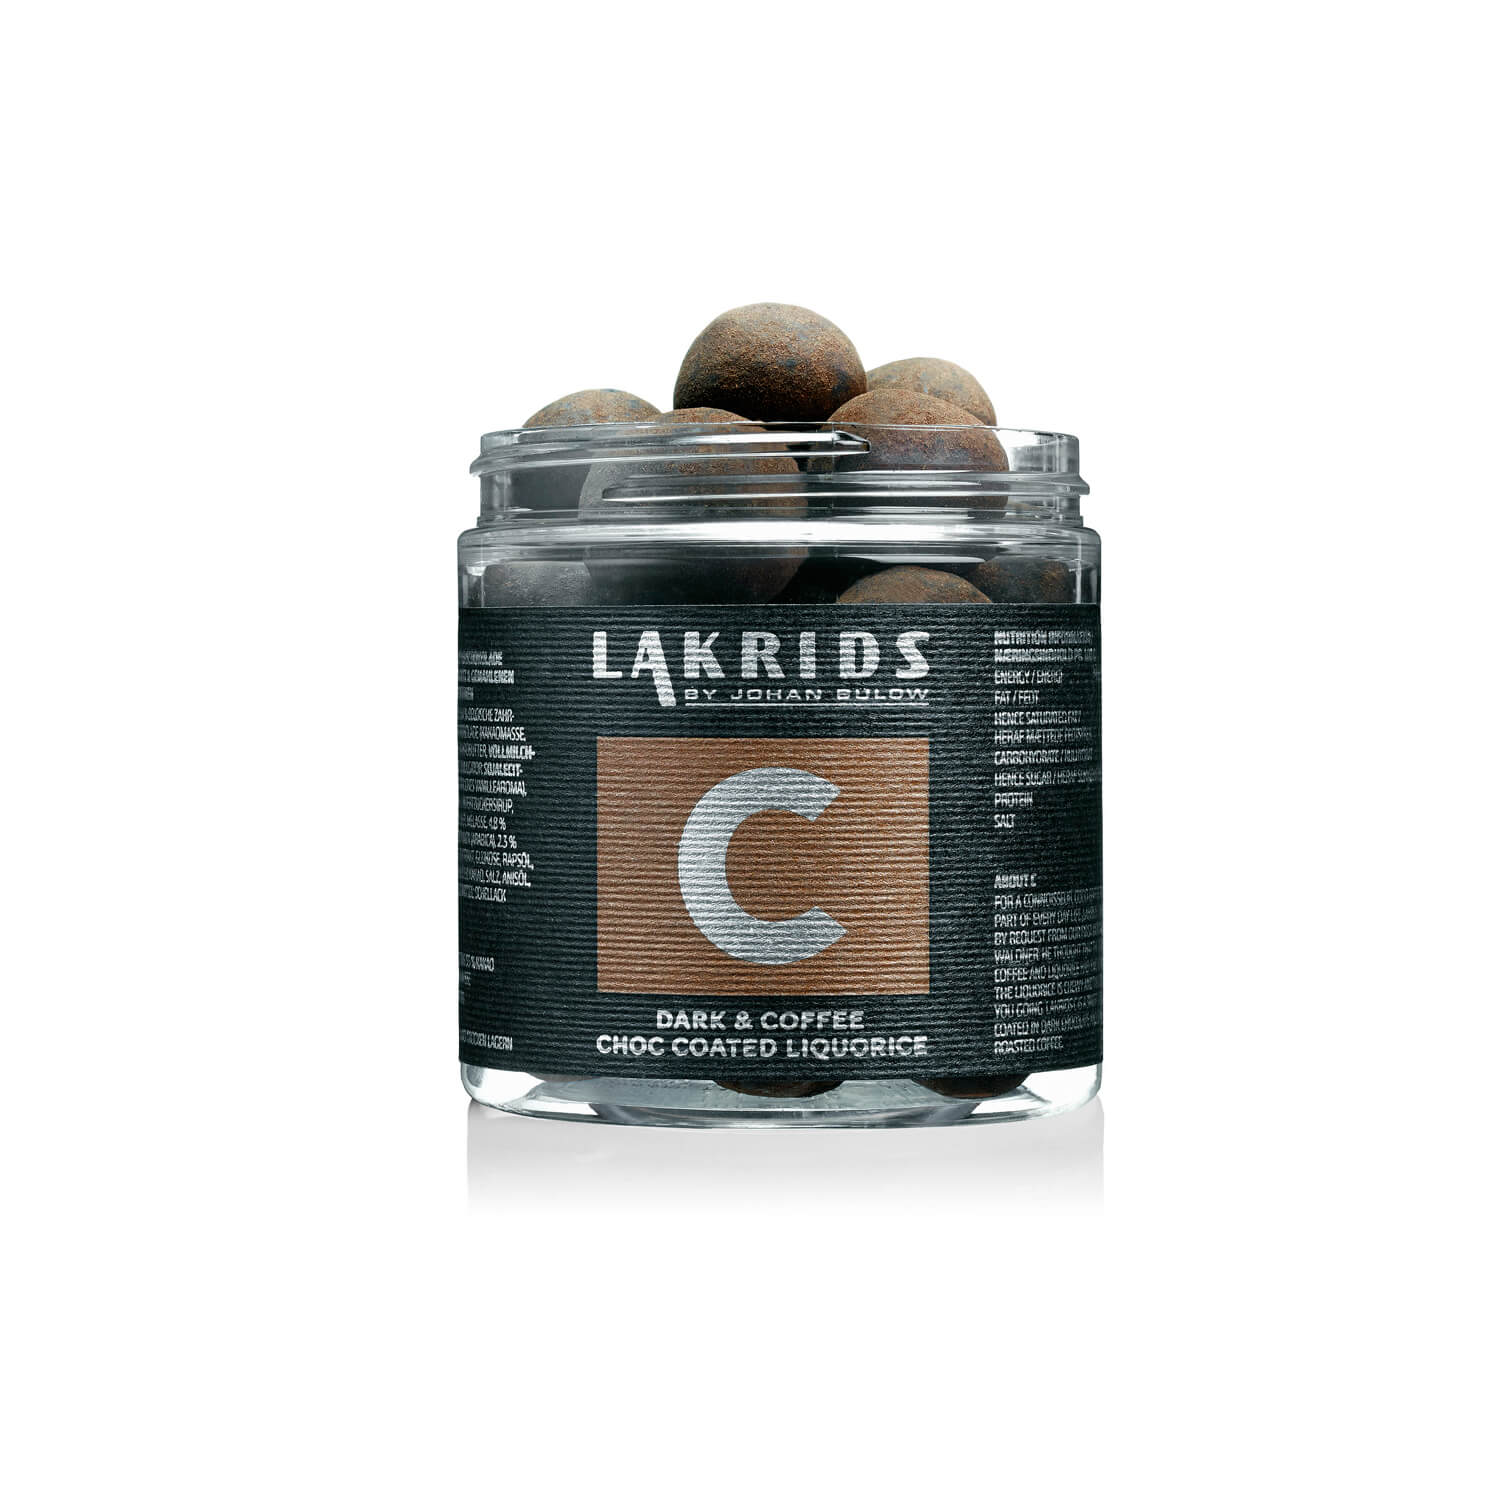 Lakrids – C Dark & Coffee Choc Coated Liquorice – Kaffee Lakritz